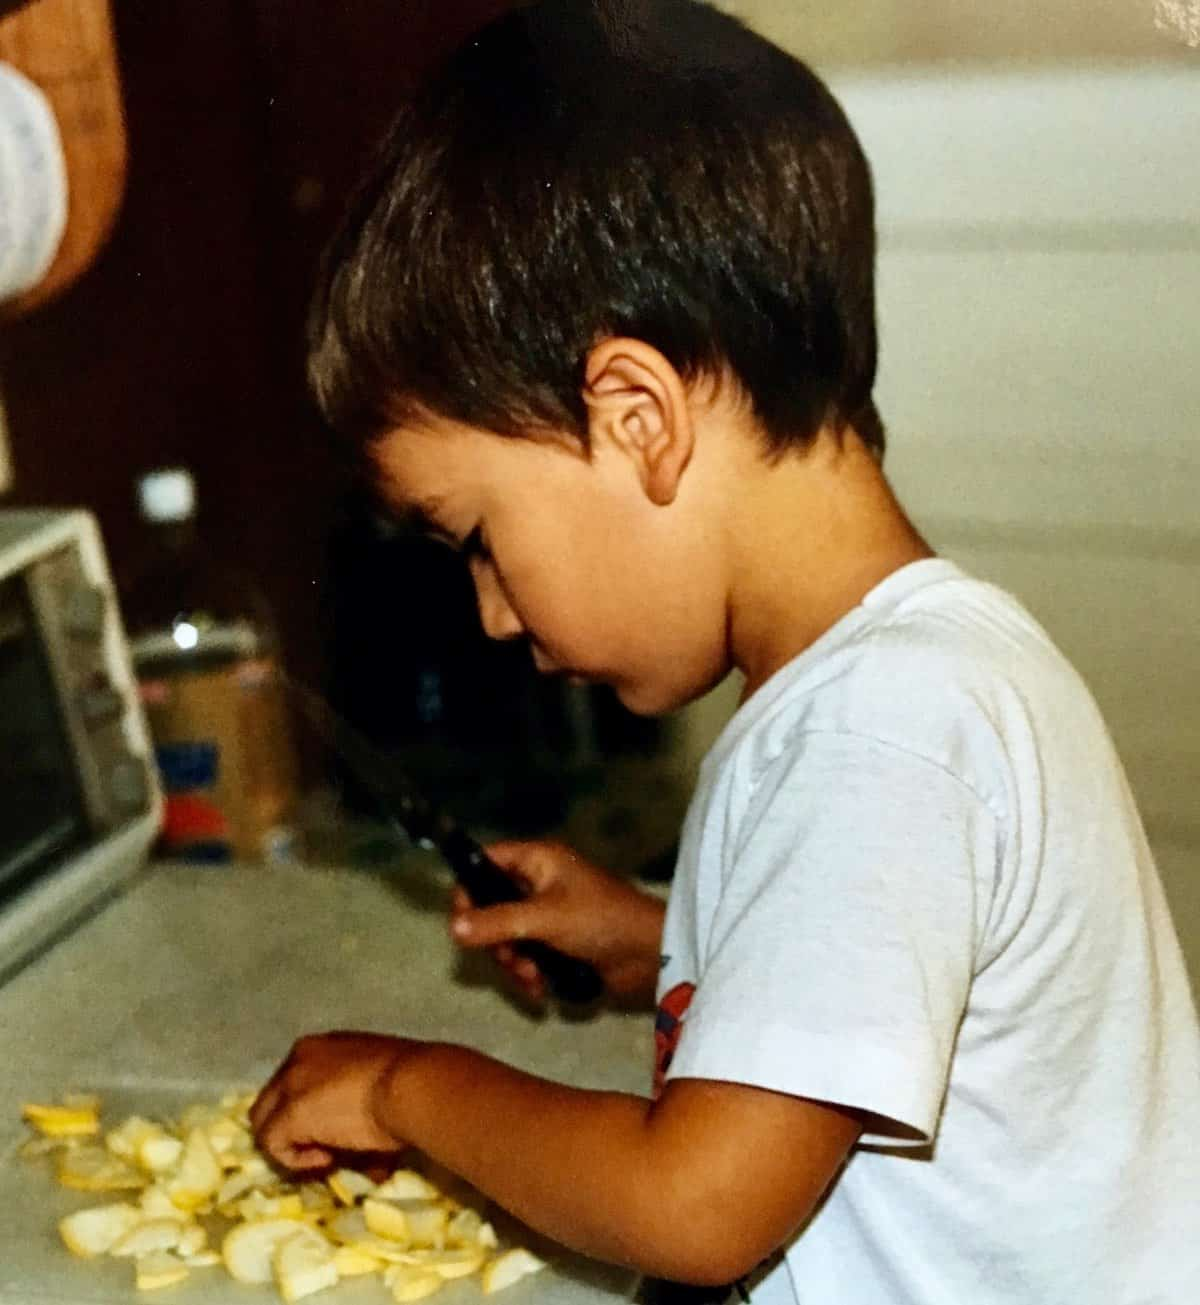 William as a toddler doing some cooking